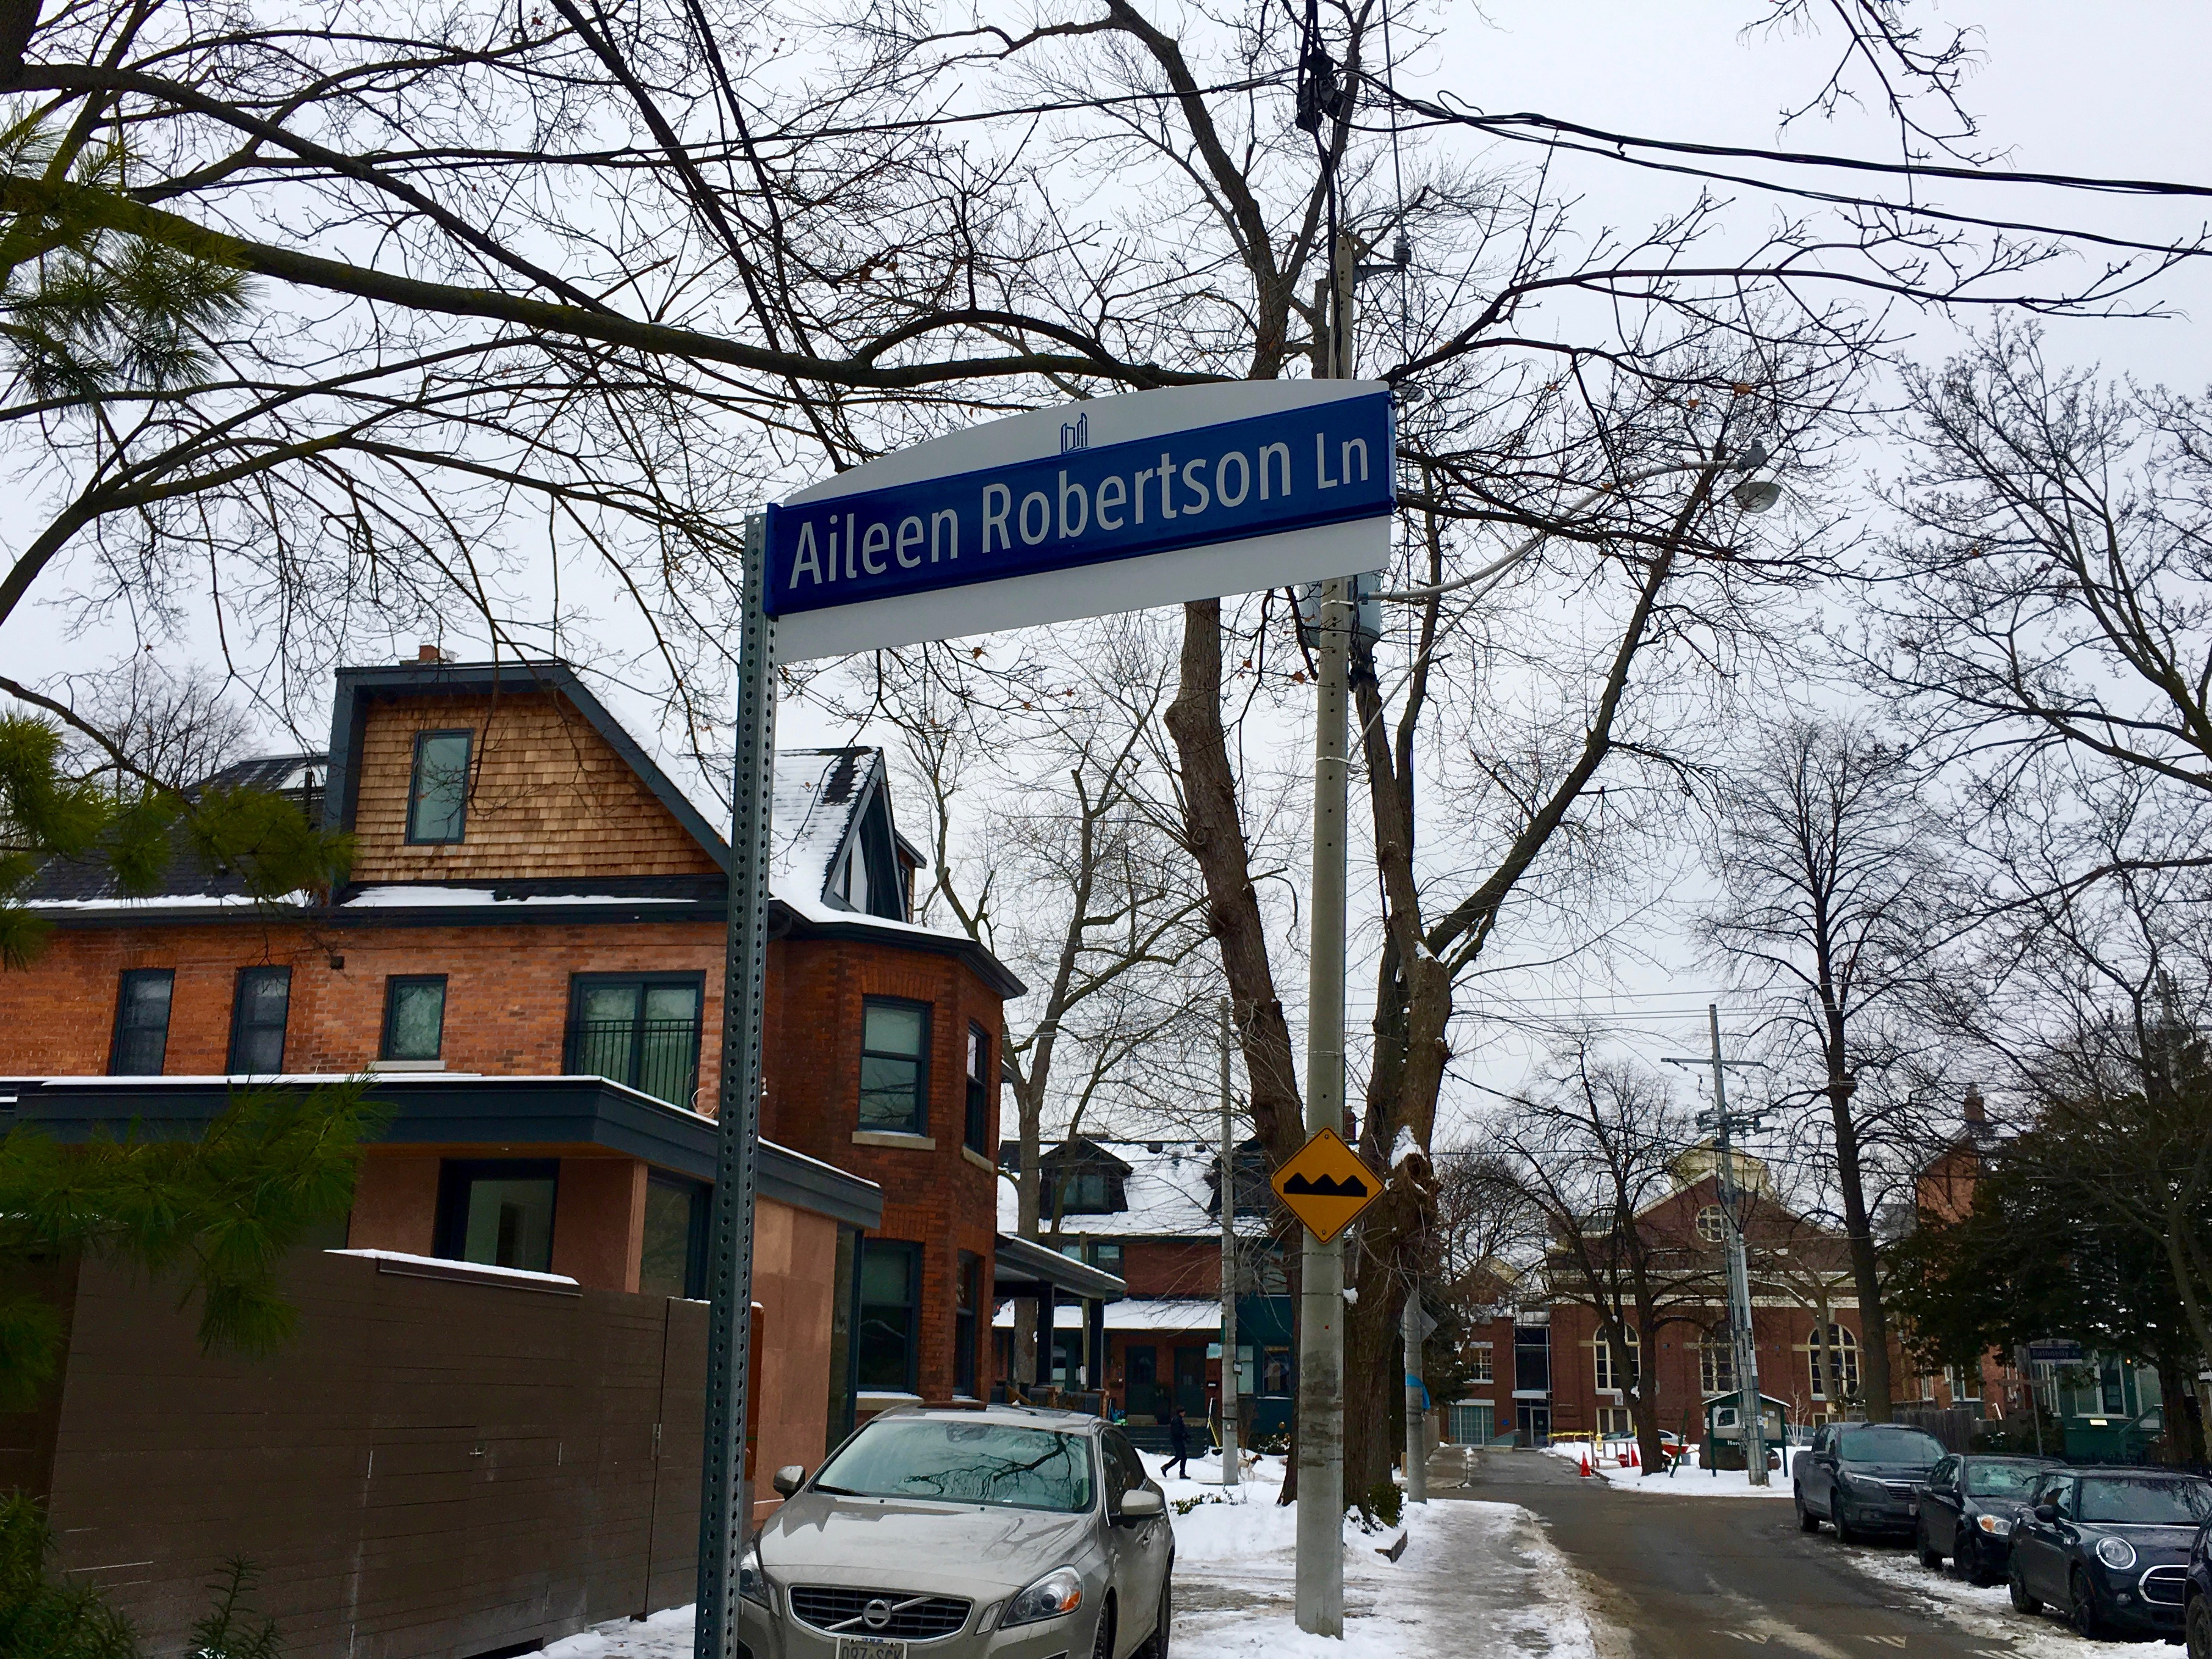 10:37 a.m., Jan. 18, 2018. As women around the world took to the streets on the third Saturday in January for the global women's march, Signal Toronto looked at the spaces that connect the streets – the city's laneways – and specifically the names of those streets.